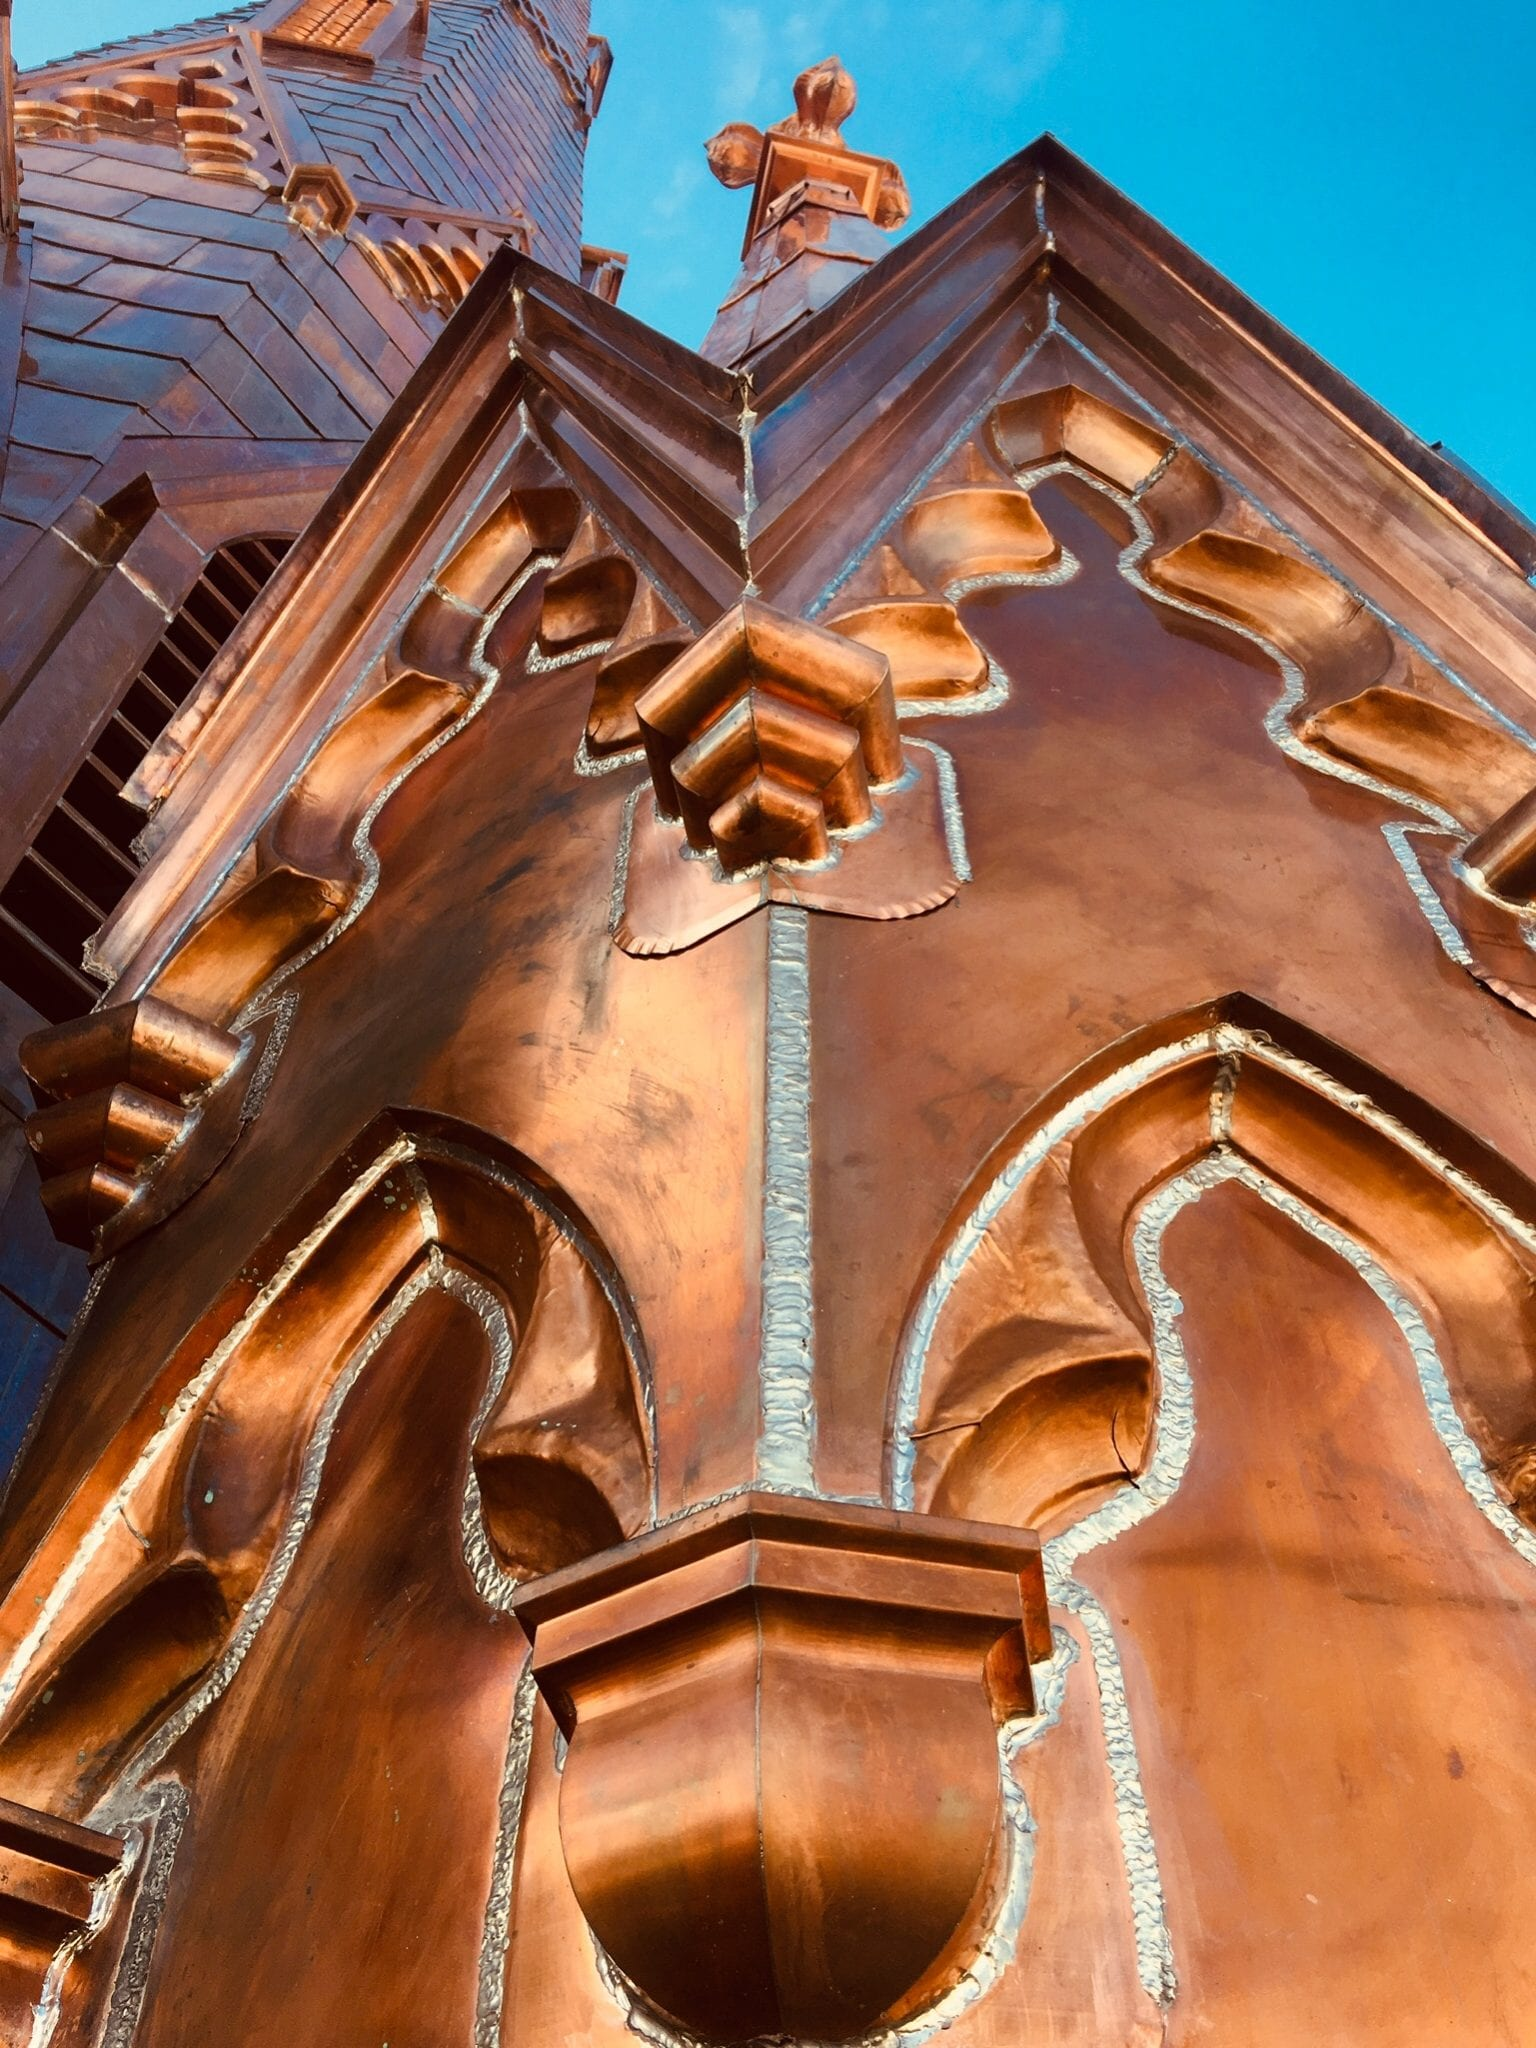 close up of steeple square copper welding work with blue sky in the background